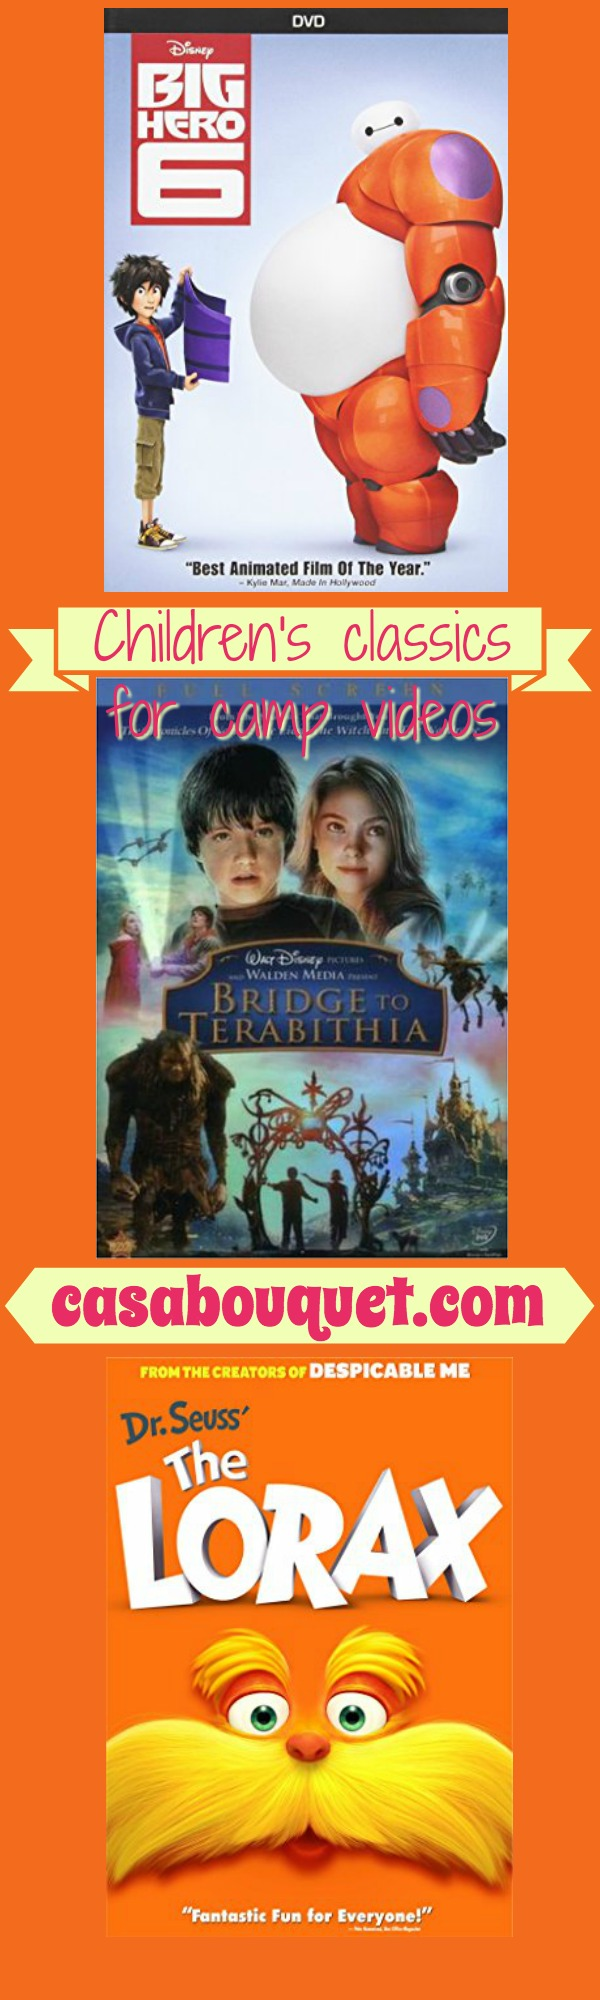 Children's classics for camp videos for middle and high school students. Resource links, how to find movies based on literature, and top camp video lists.